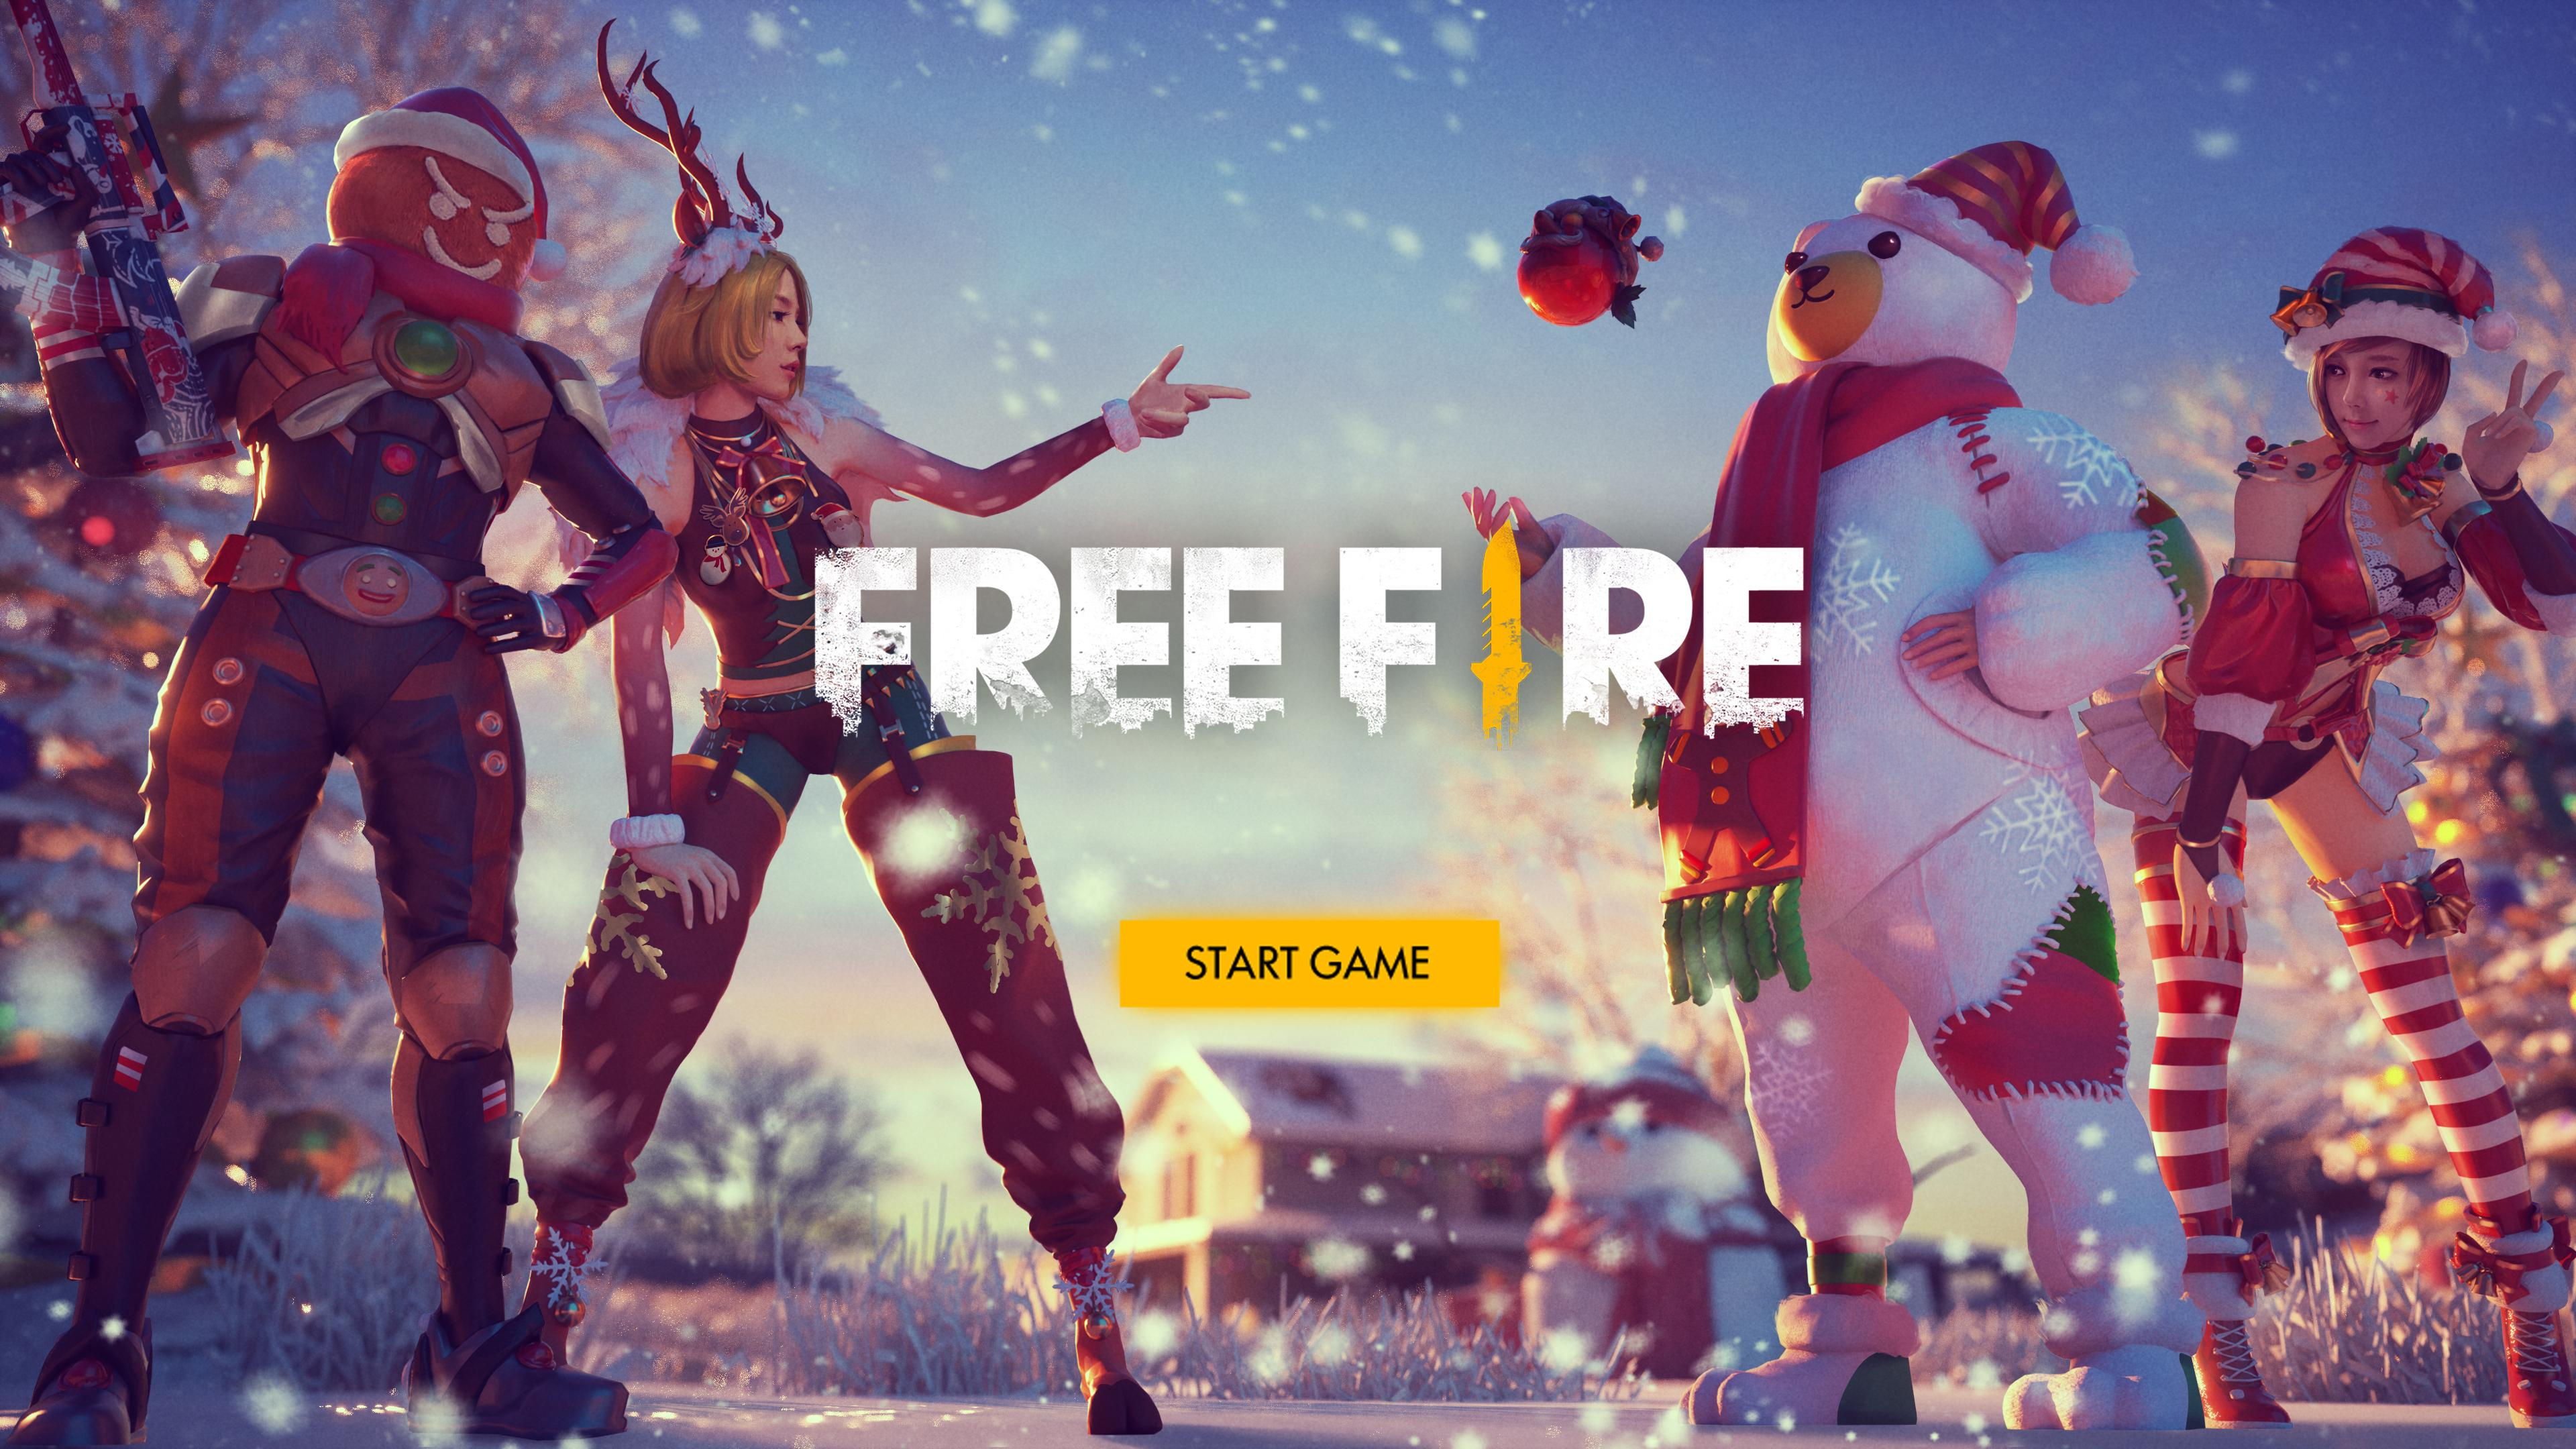 #3  Garena Free Fire Wallpaper 2019 - 2560 × 1440 (QHD, WQHD, Quad HD, 1440p) 7